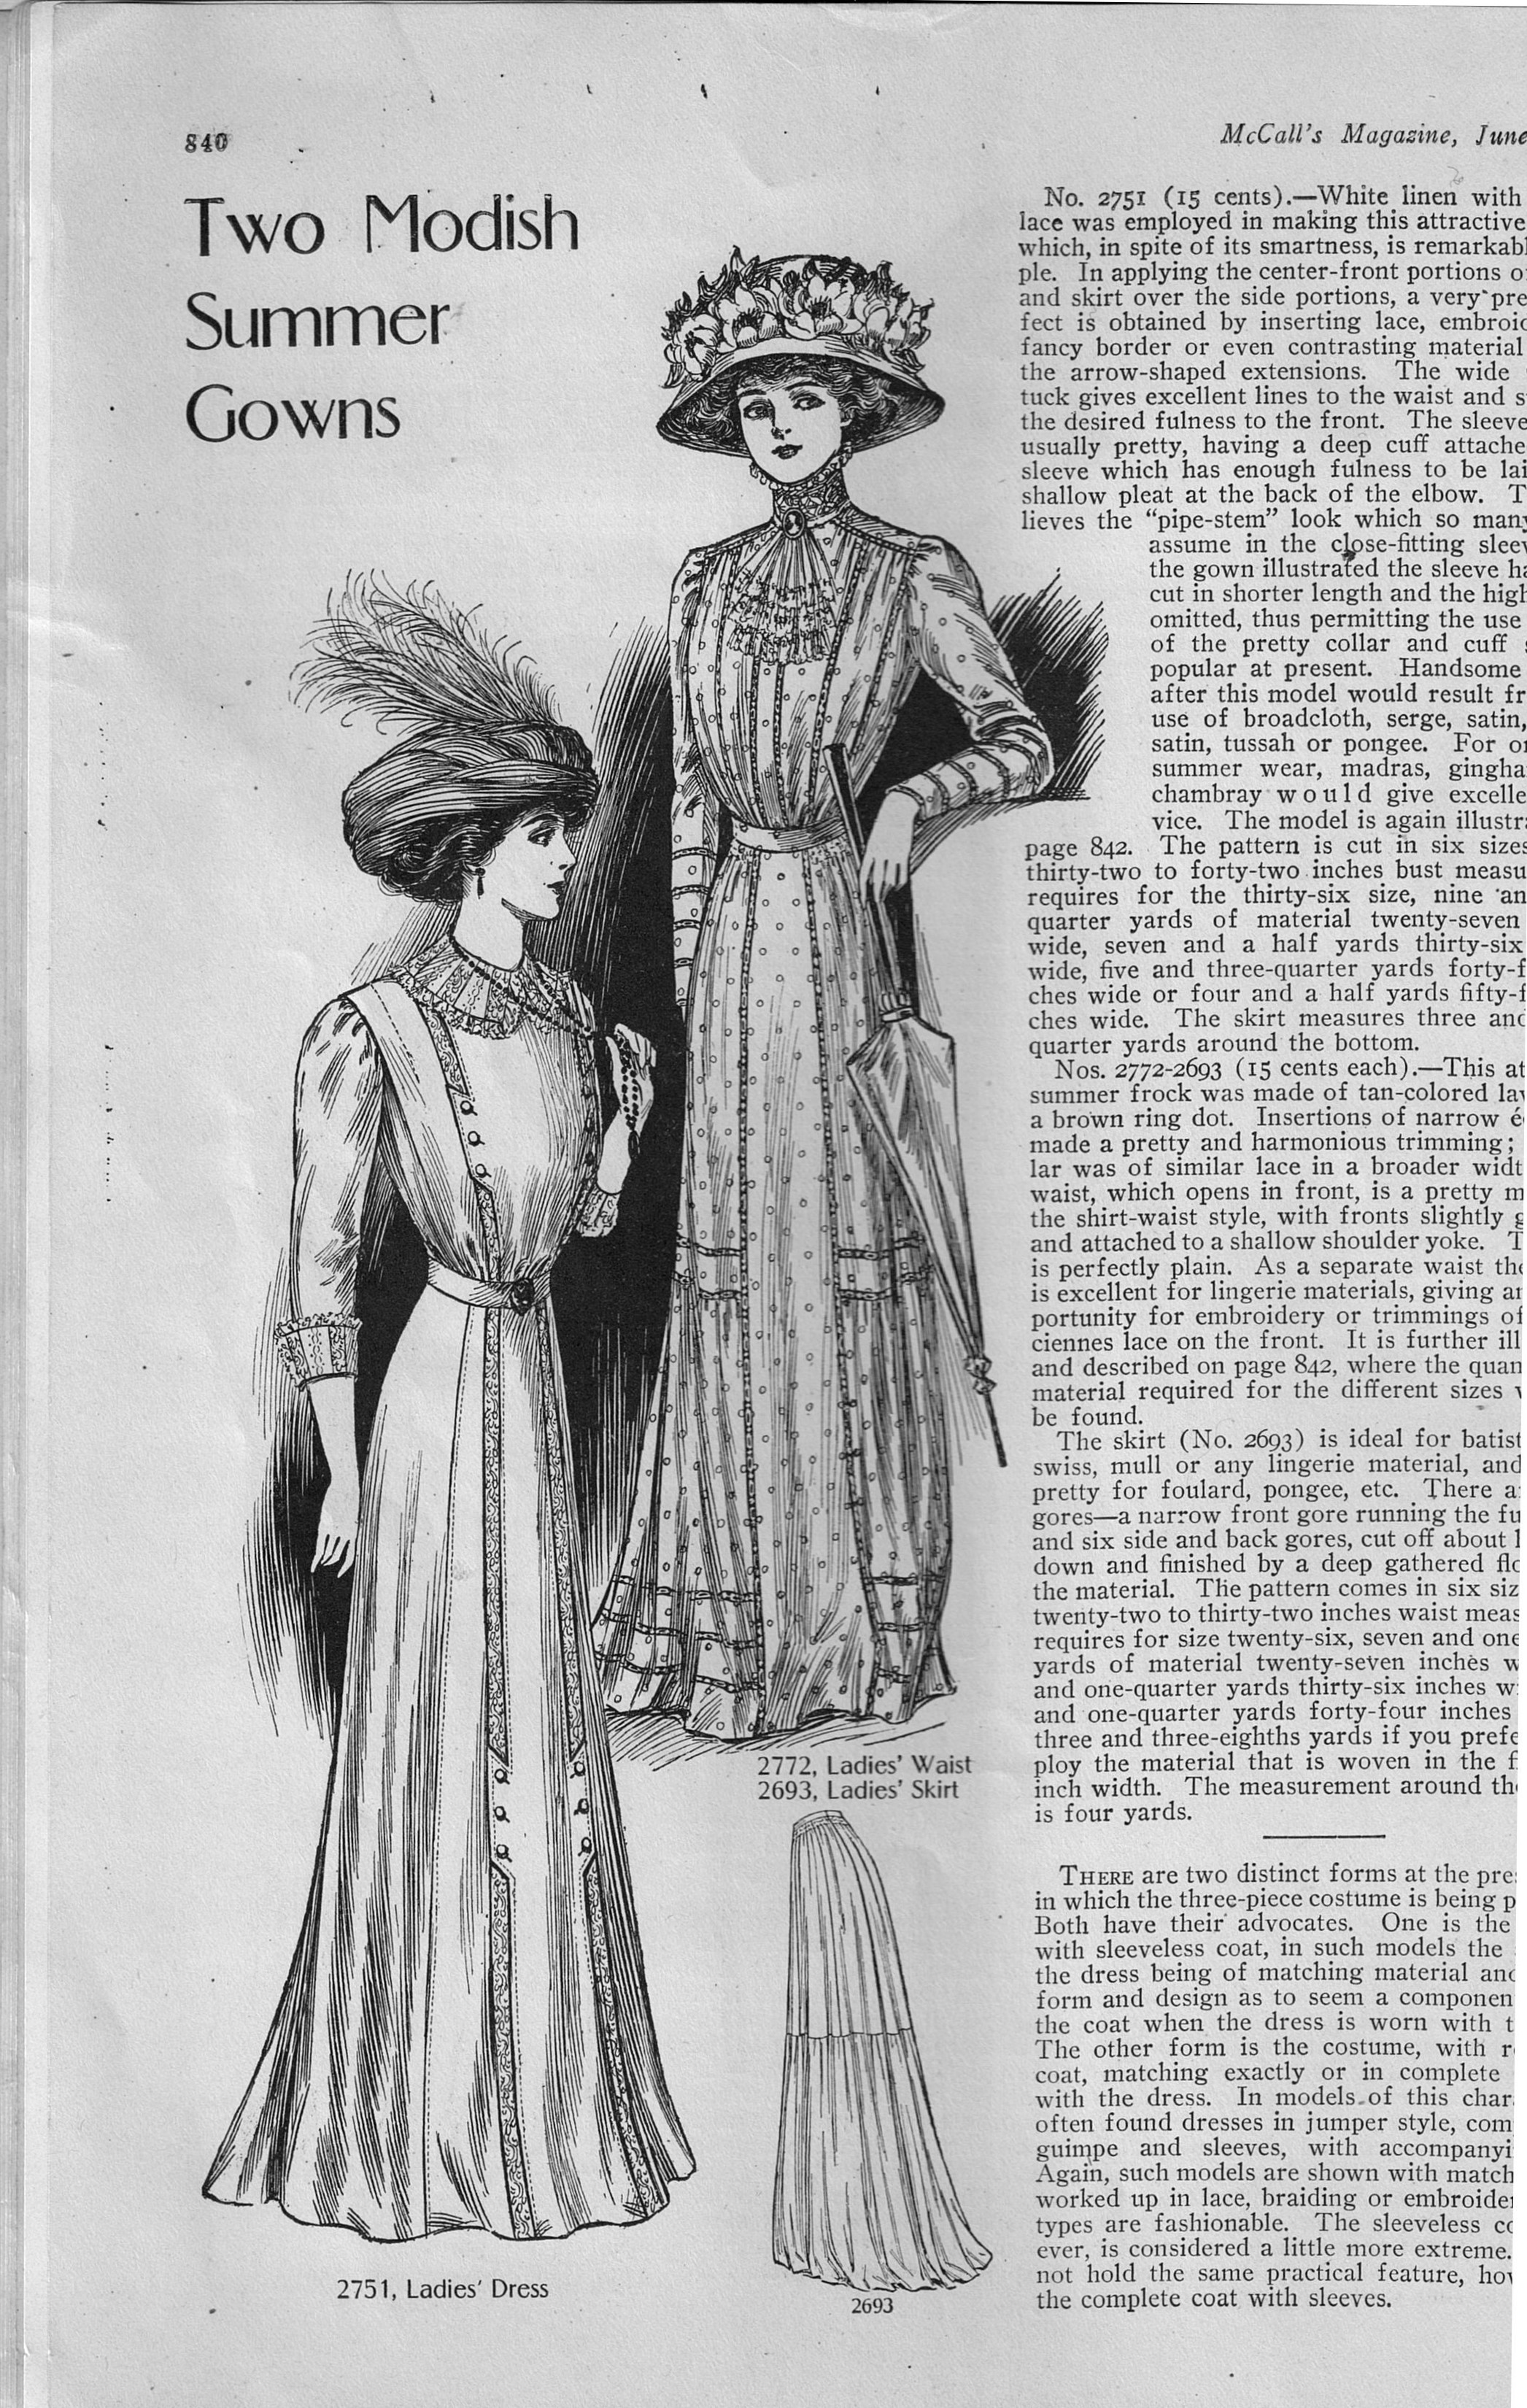 Two Modish Summer Gowns